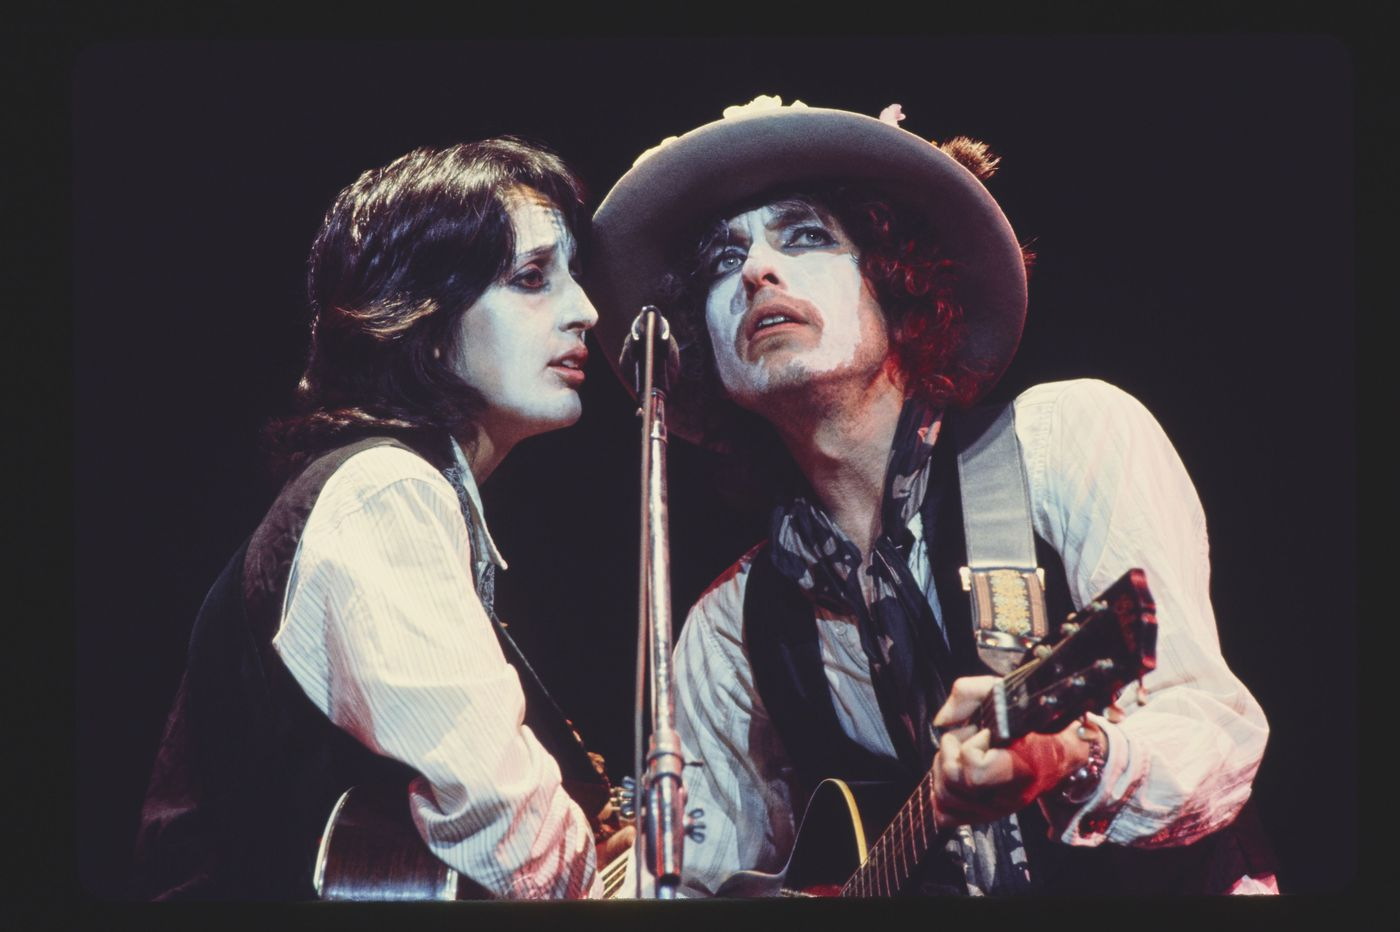 Martin Scorsese revisits Bob Dylan's traveling circus in his new Netflix documentary about the Rolling Thunder Revue